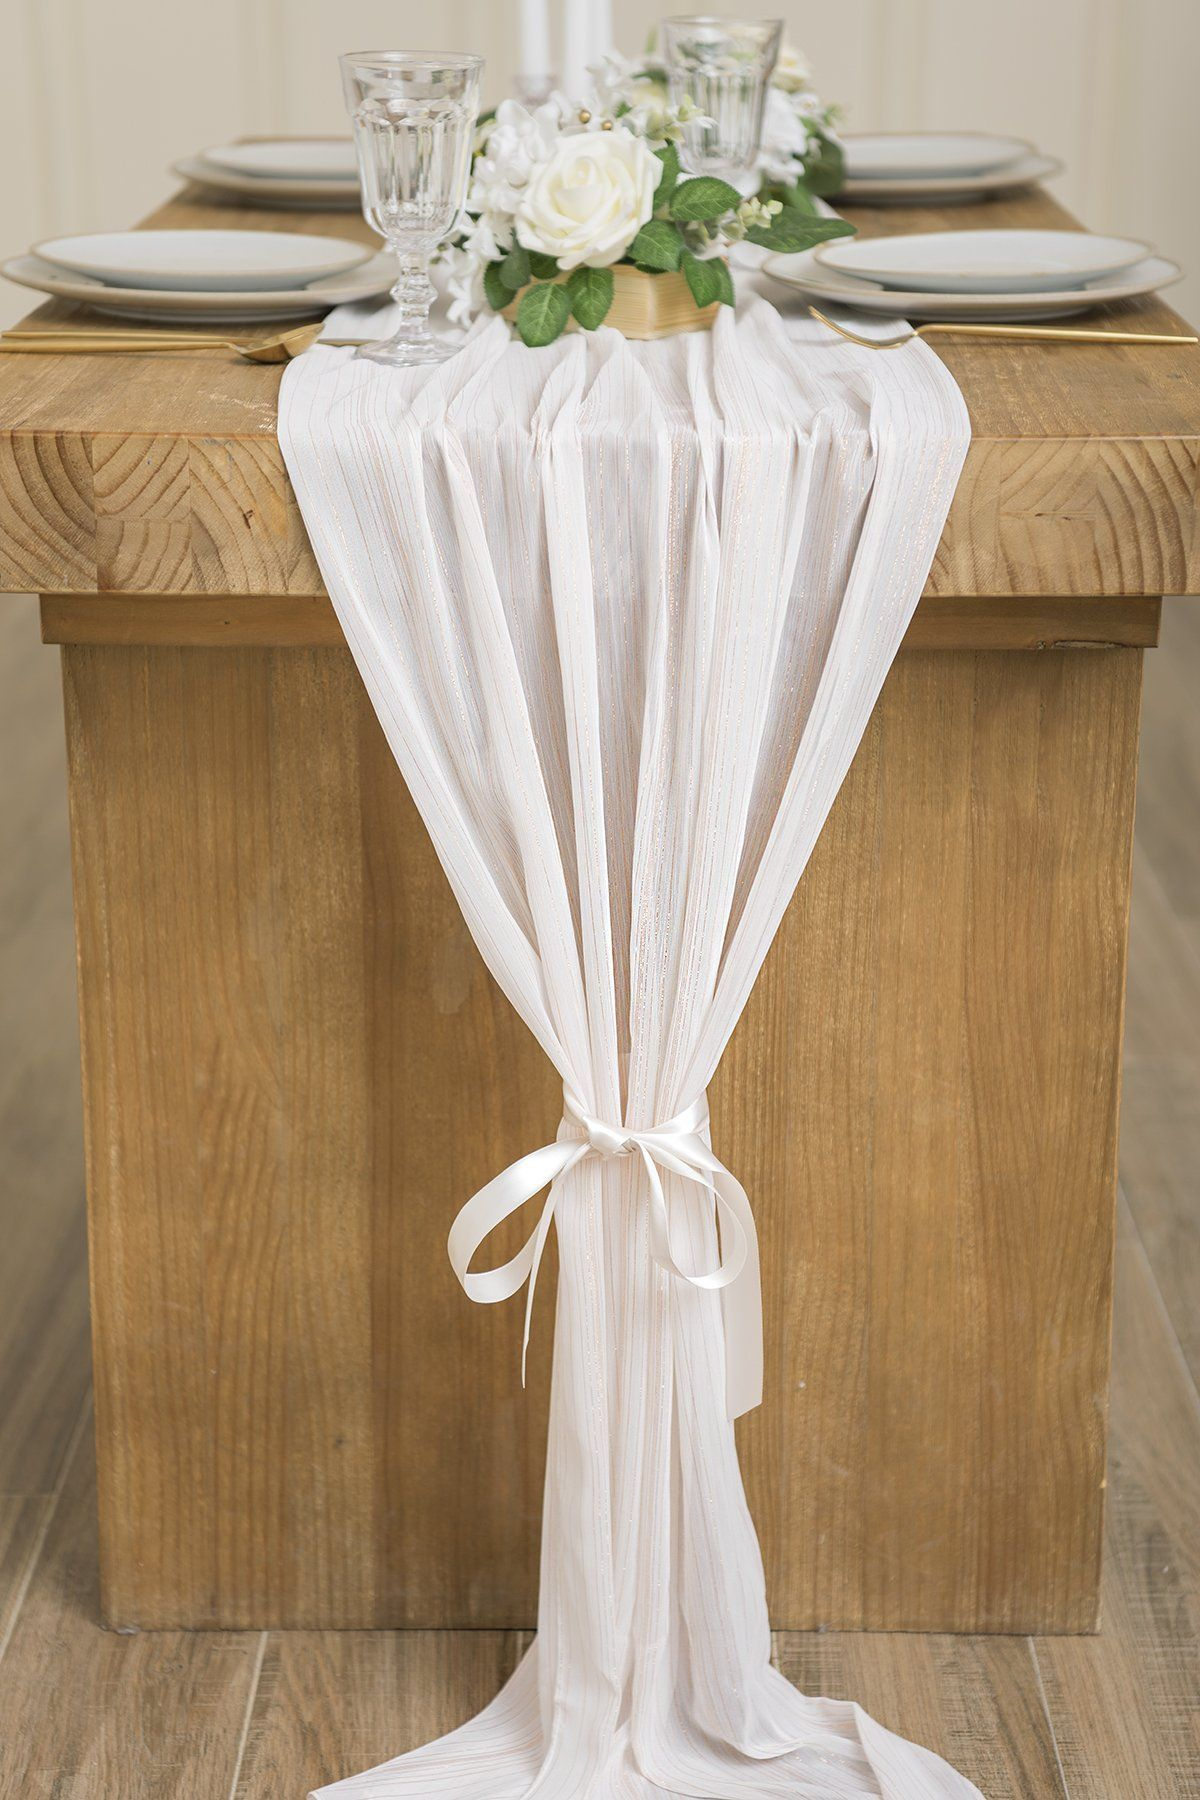 Sheer Chiffon Table Runner 27 Cocktail Table Decor Wedding Table Toppers Lace Table Runners